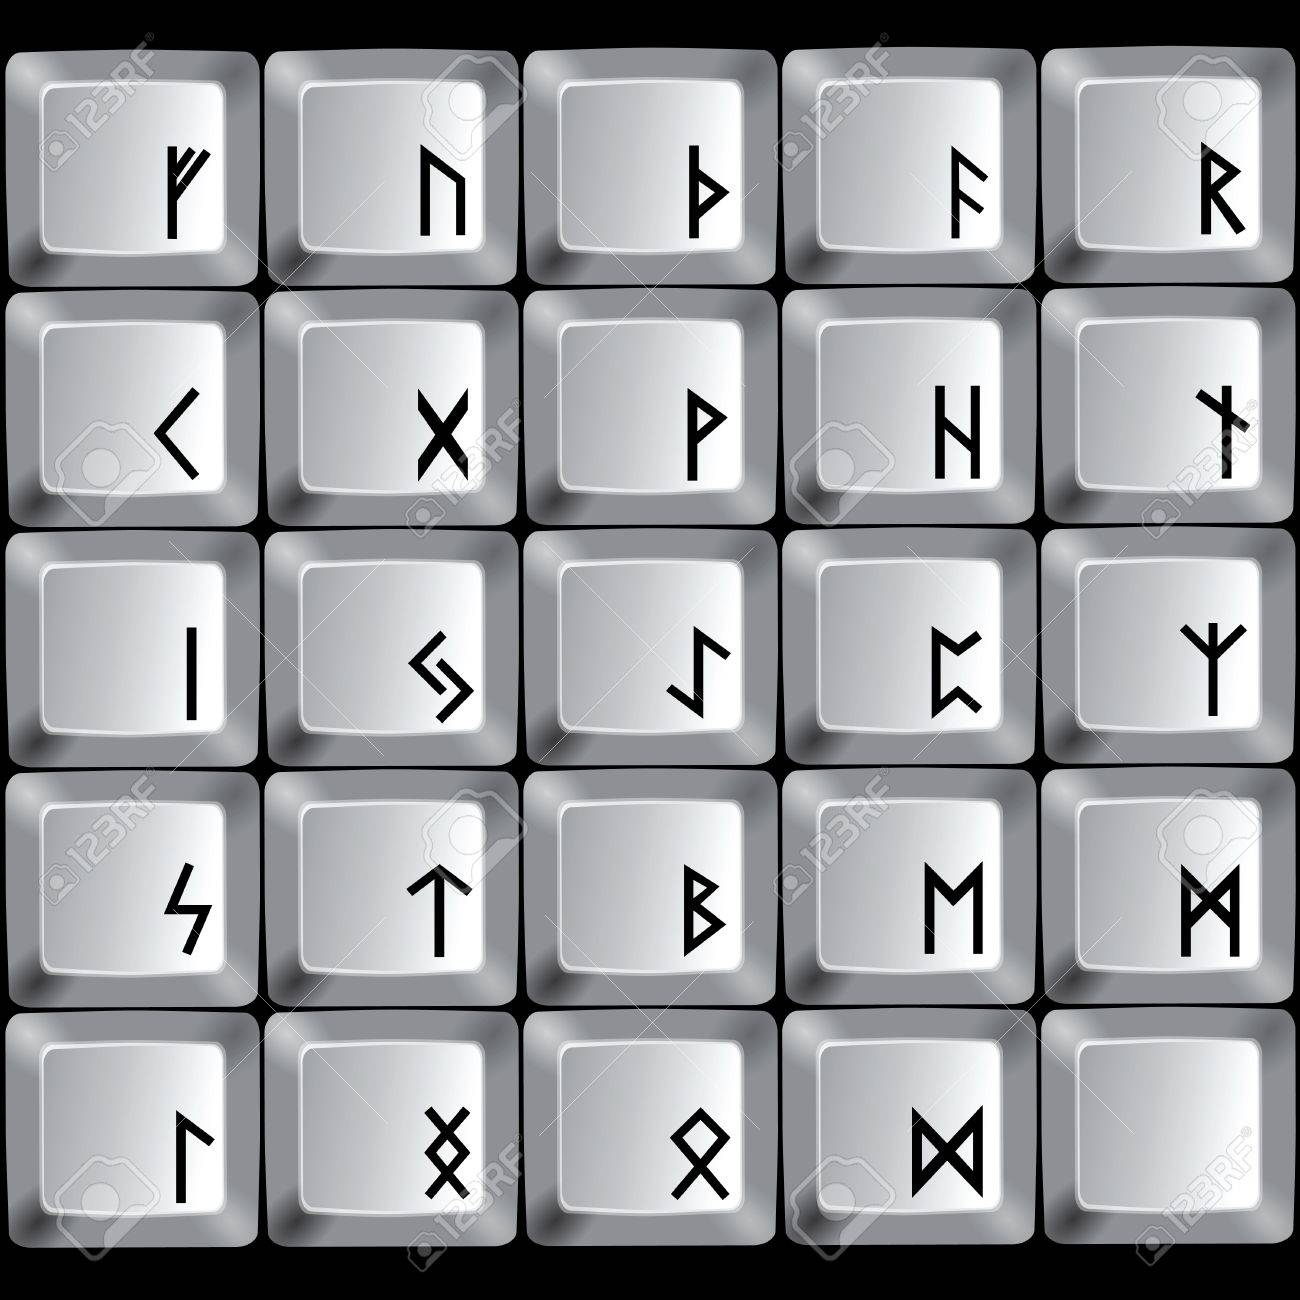 Rune symbols on the buttons of a computer keyboard royalty free rune symbols on the buttons of a computer keyboard stock vector 12813441 buycottarizona Gallery